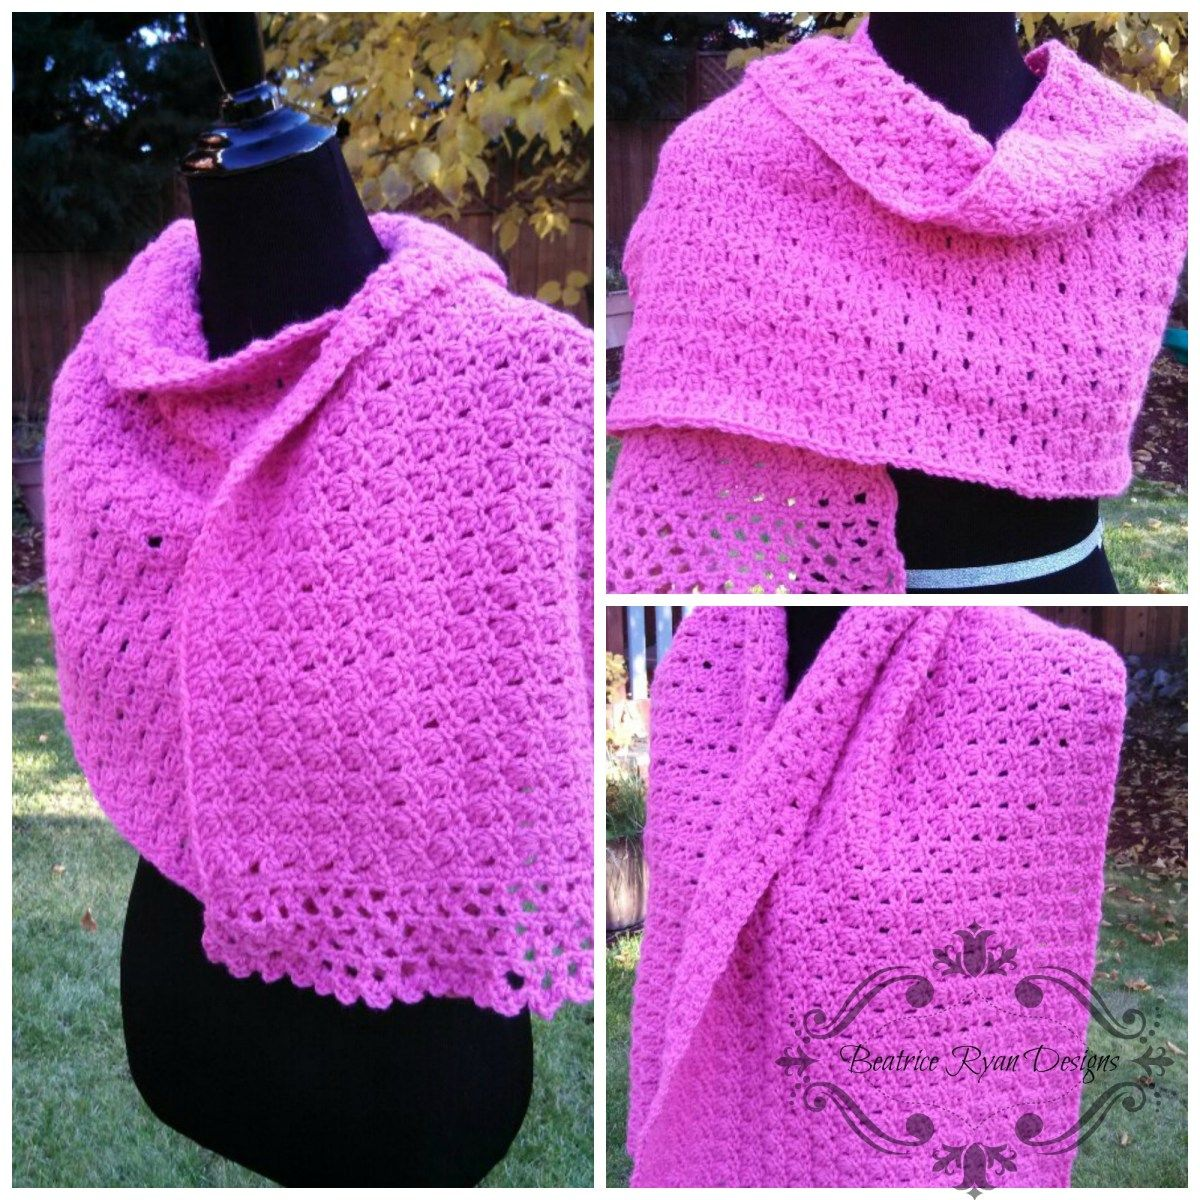 Amazing Grace Prayer Shawl- Free Crochet Pattern | Häkeln